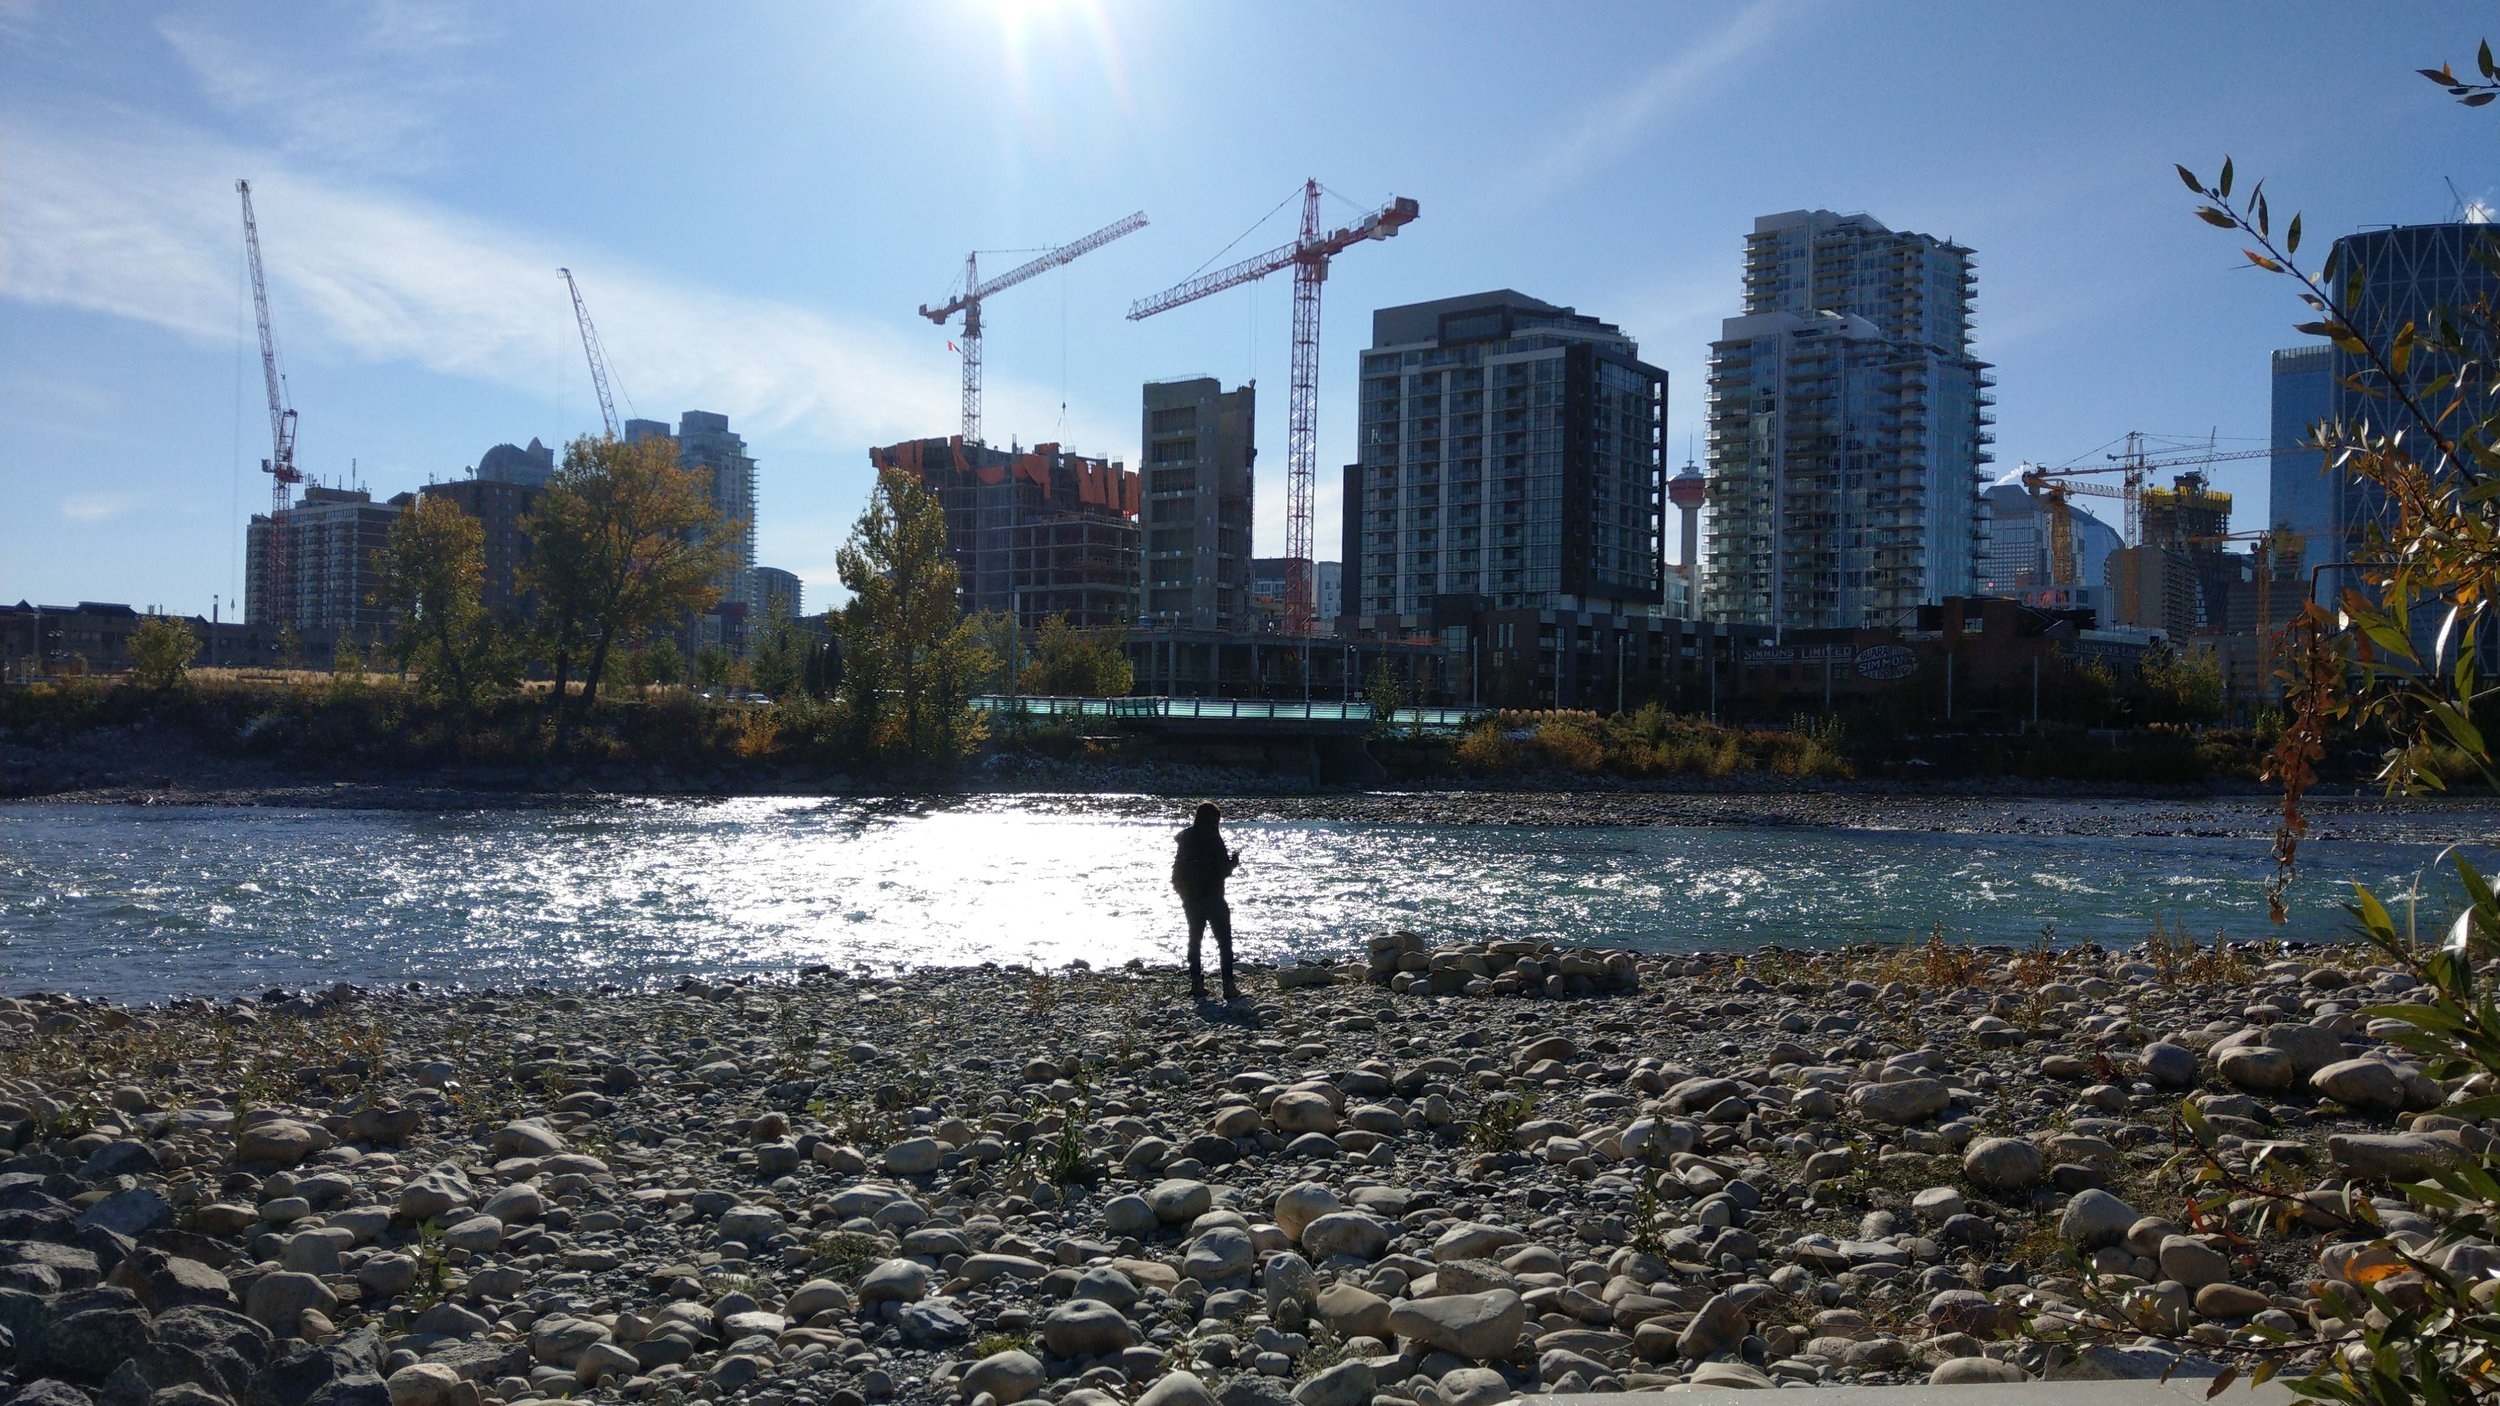 On the shore of St. Patrick's Island, overlooking development in Calgary's East Village